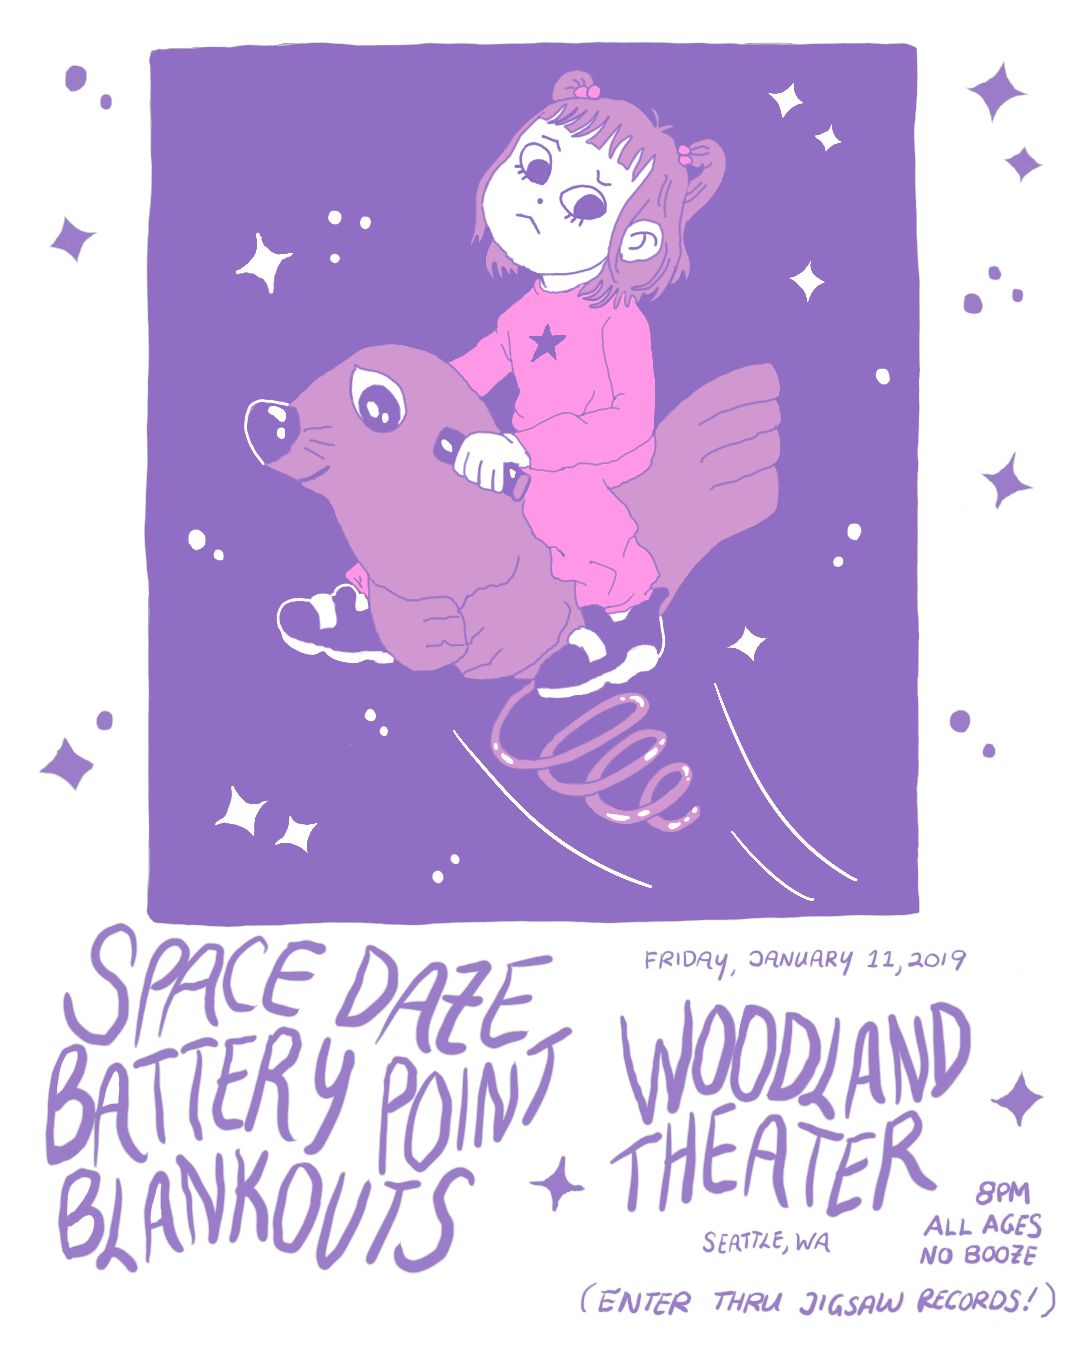 woodland theater flier.PNG